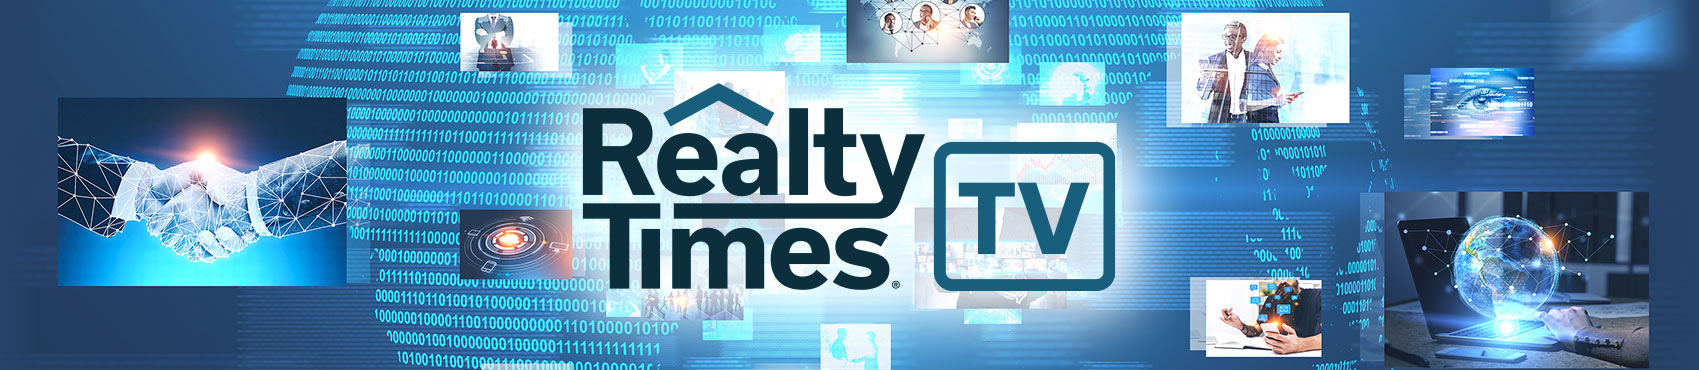 Realty Times TV Newsletter